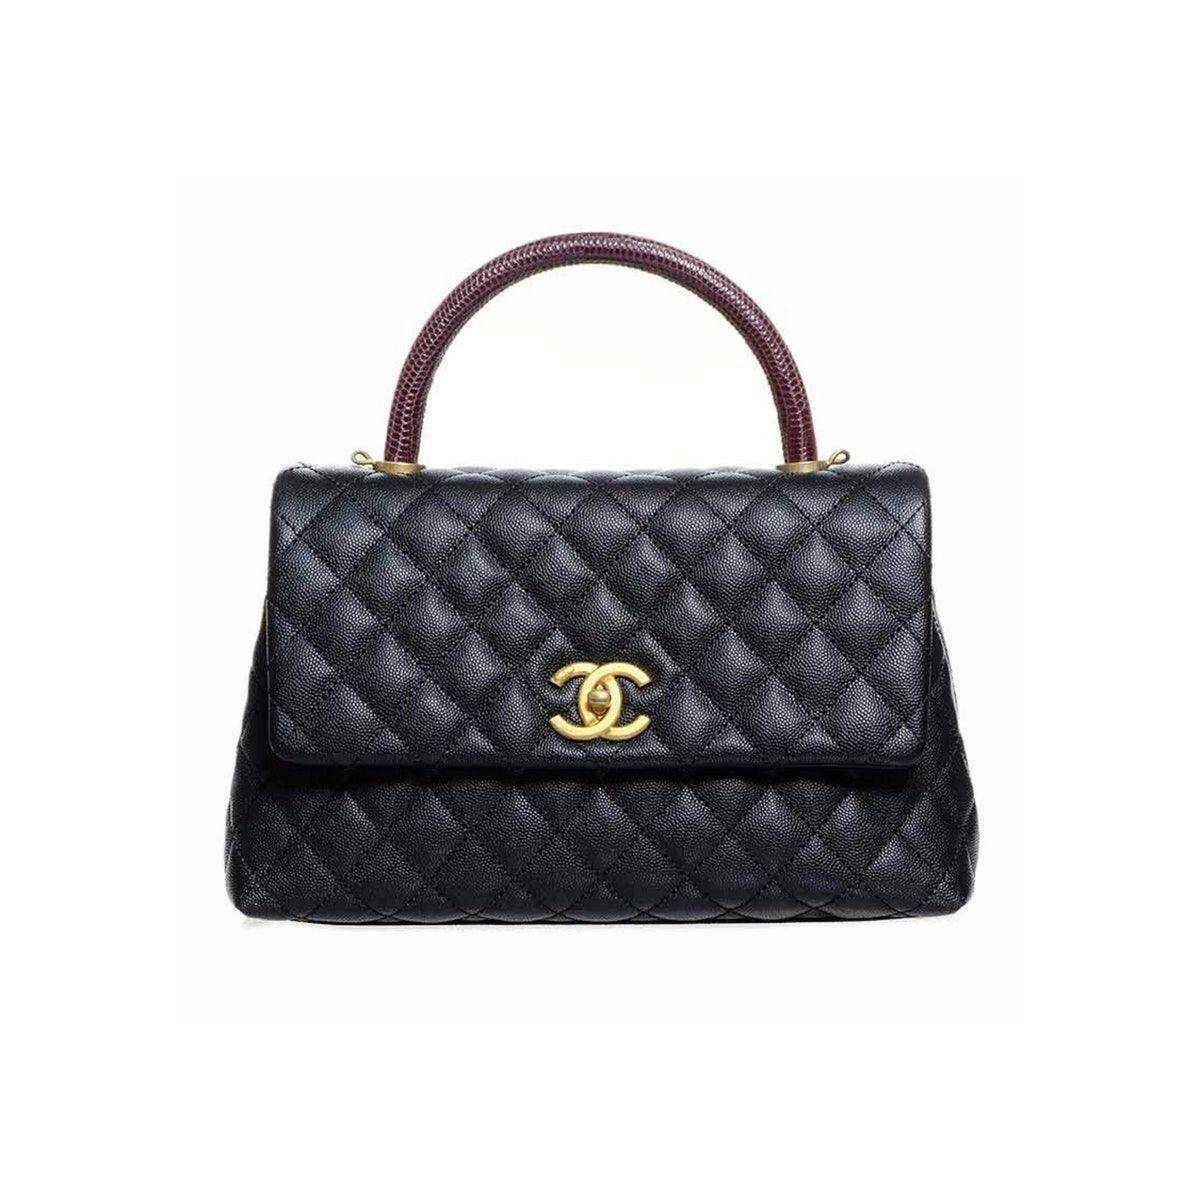 c693f186329caf Chanel Handbag Online Malaysia - HandBags 2018. COACH FEVER MANIA - Sell  Original ...